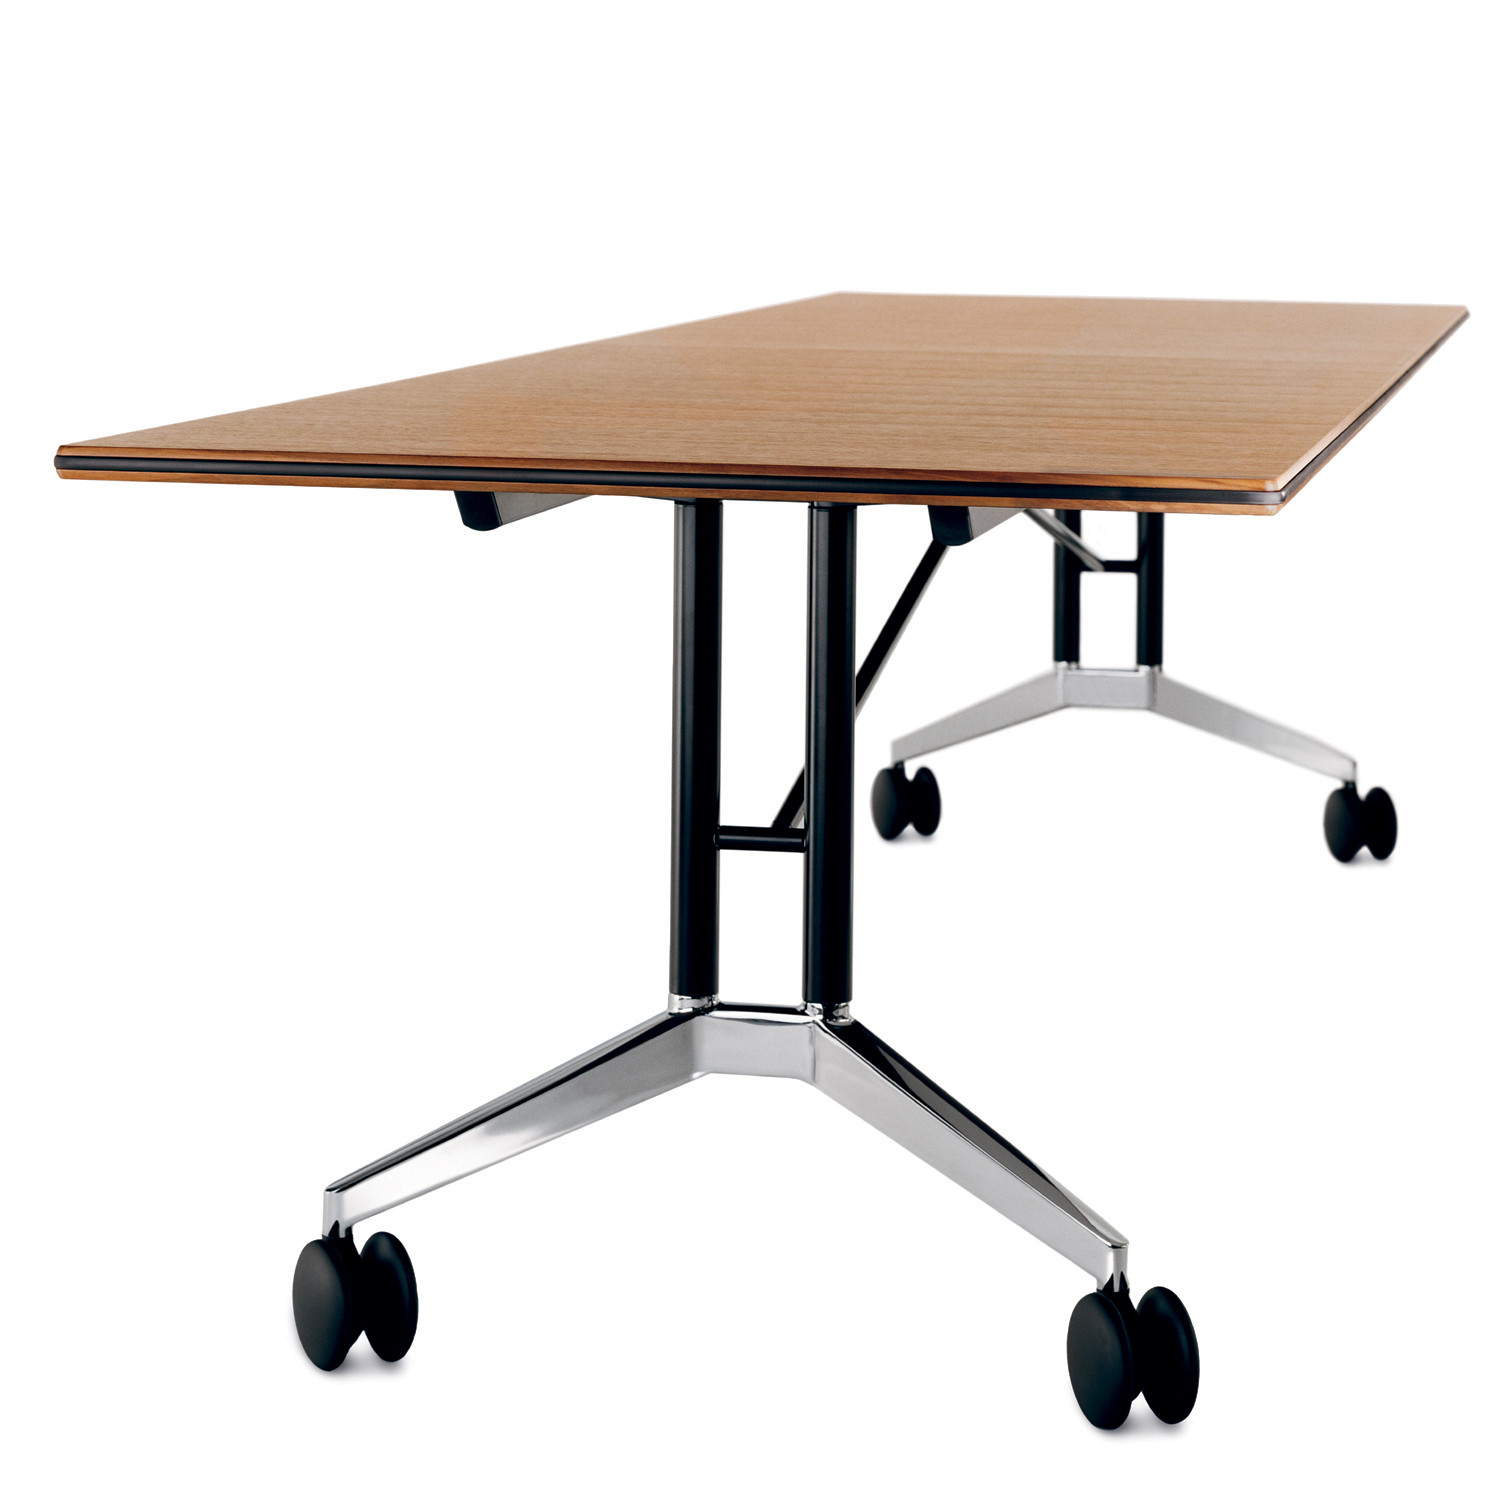 Confair 440 Range Table